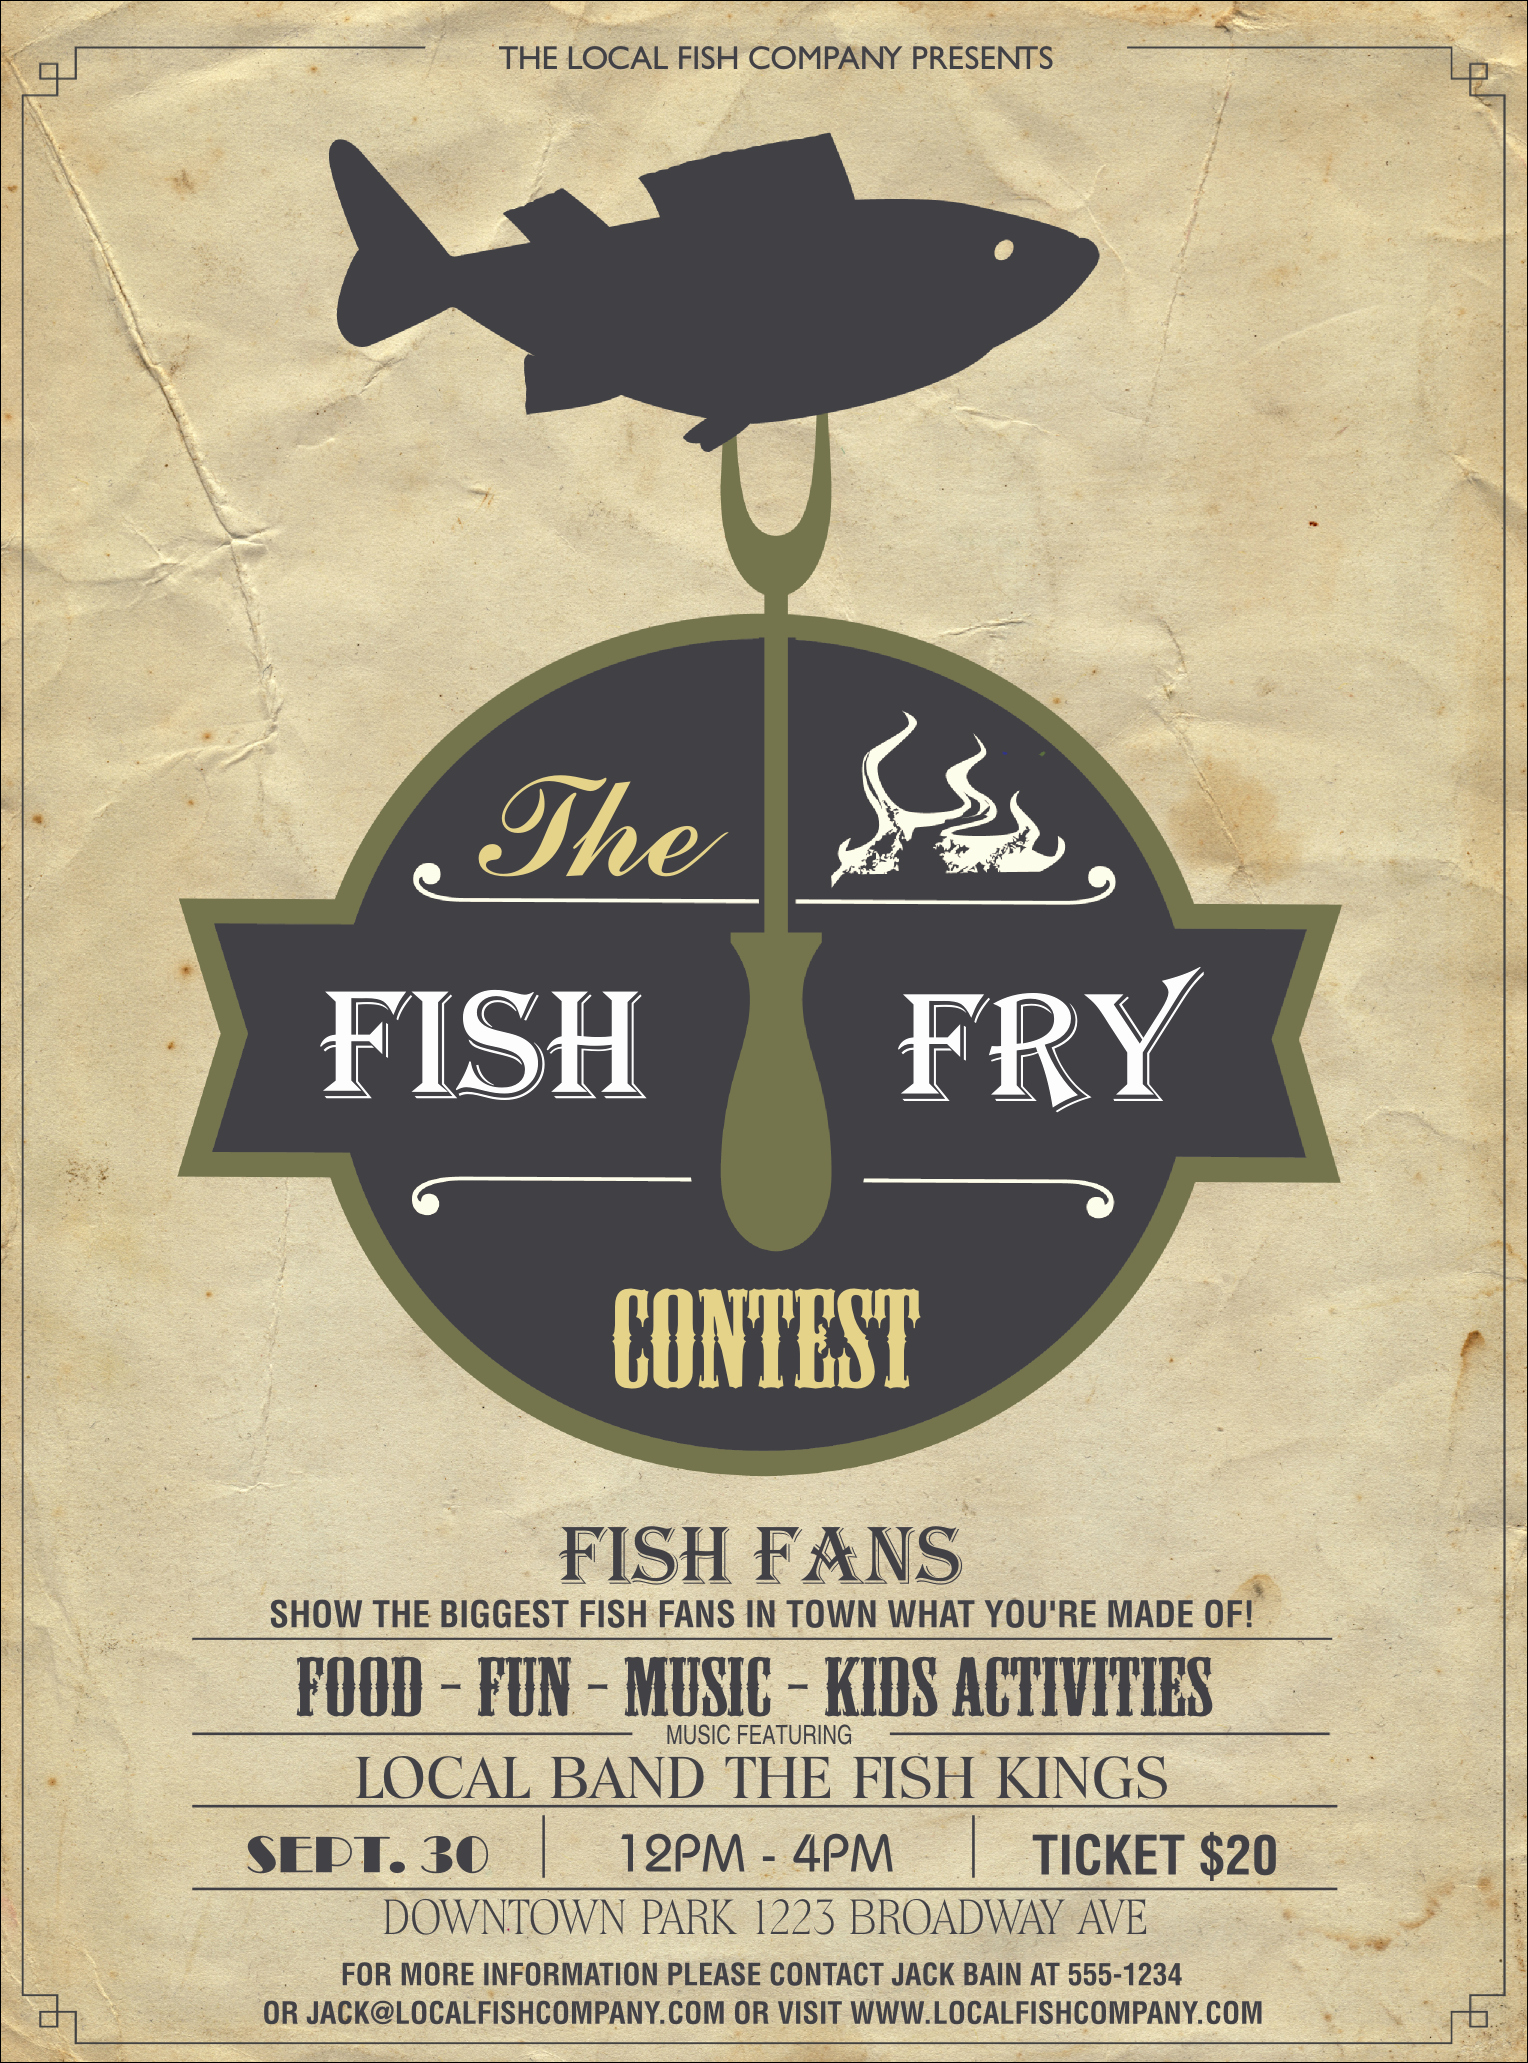 Fish Fry Flyer Examples New Fish Fry Flyer